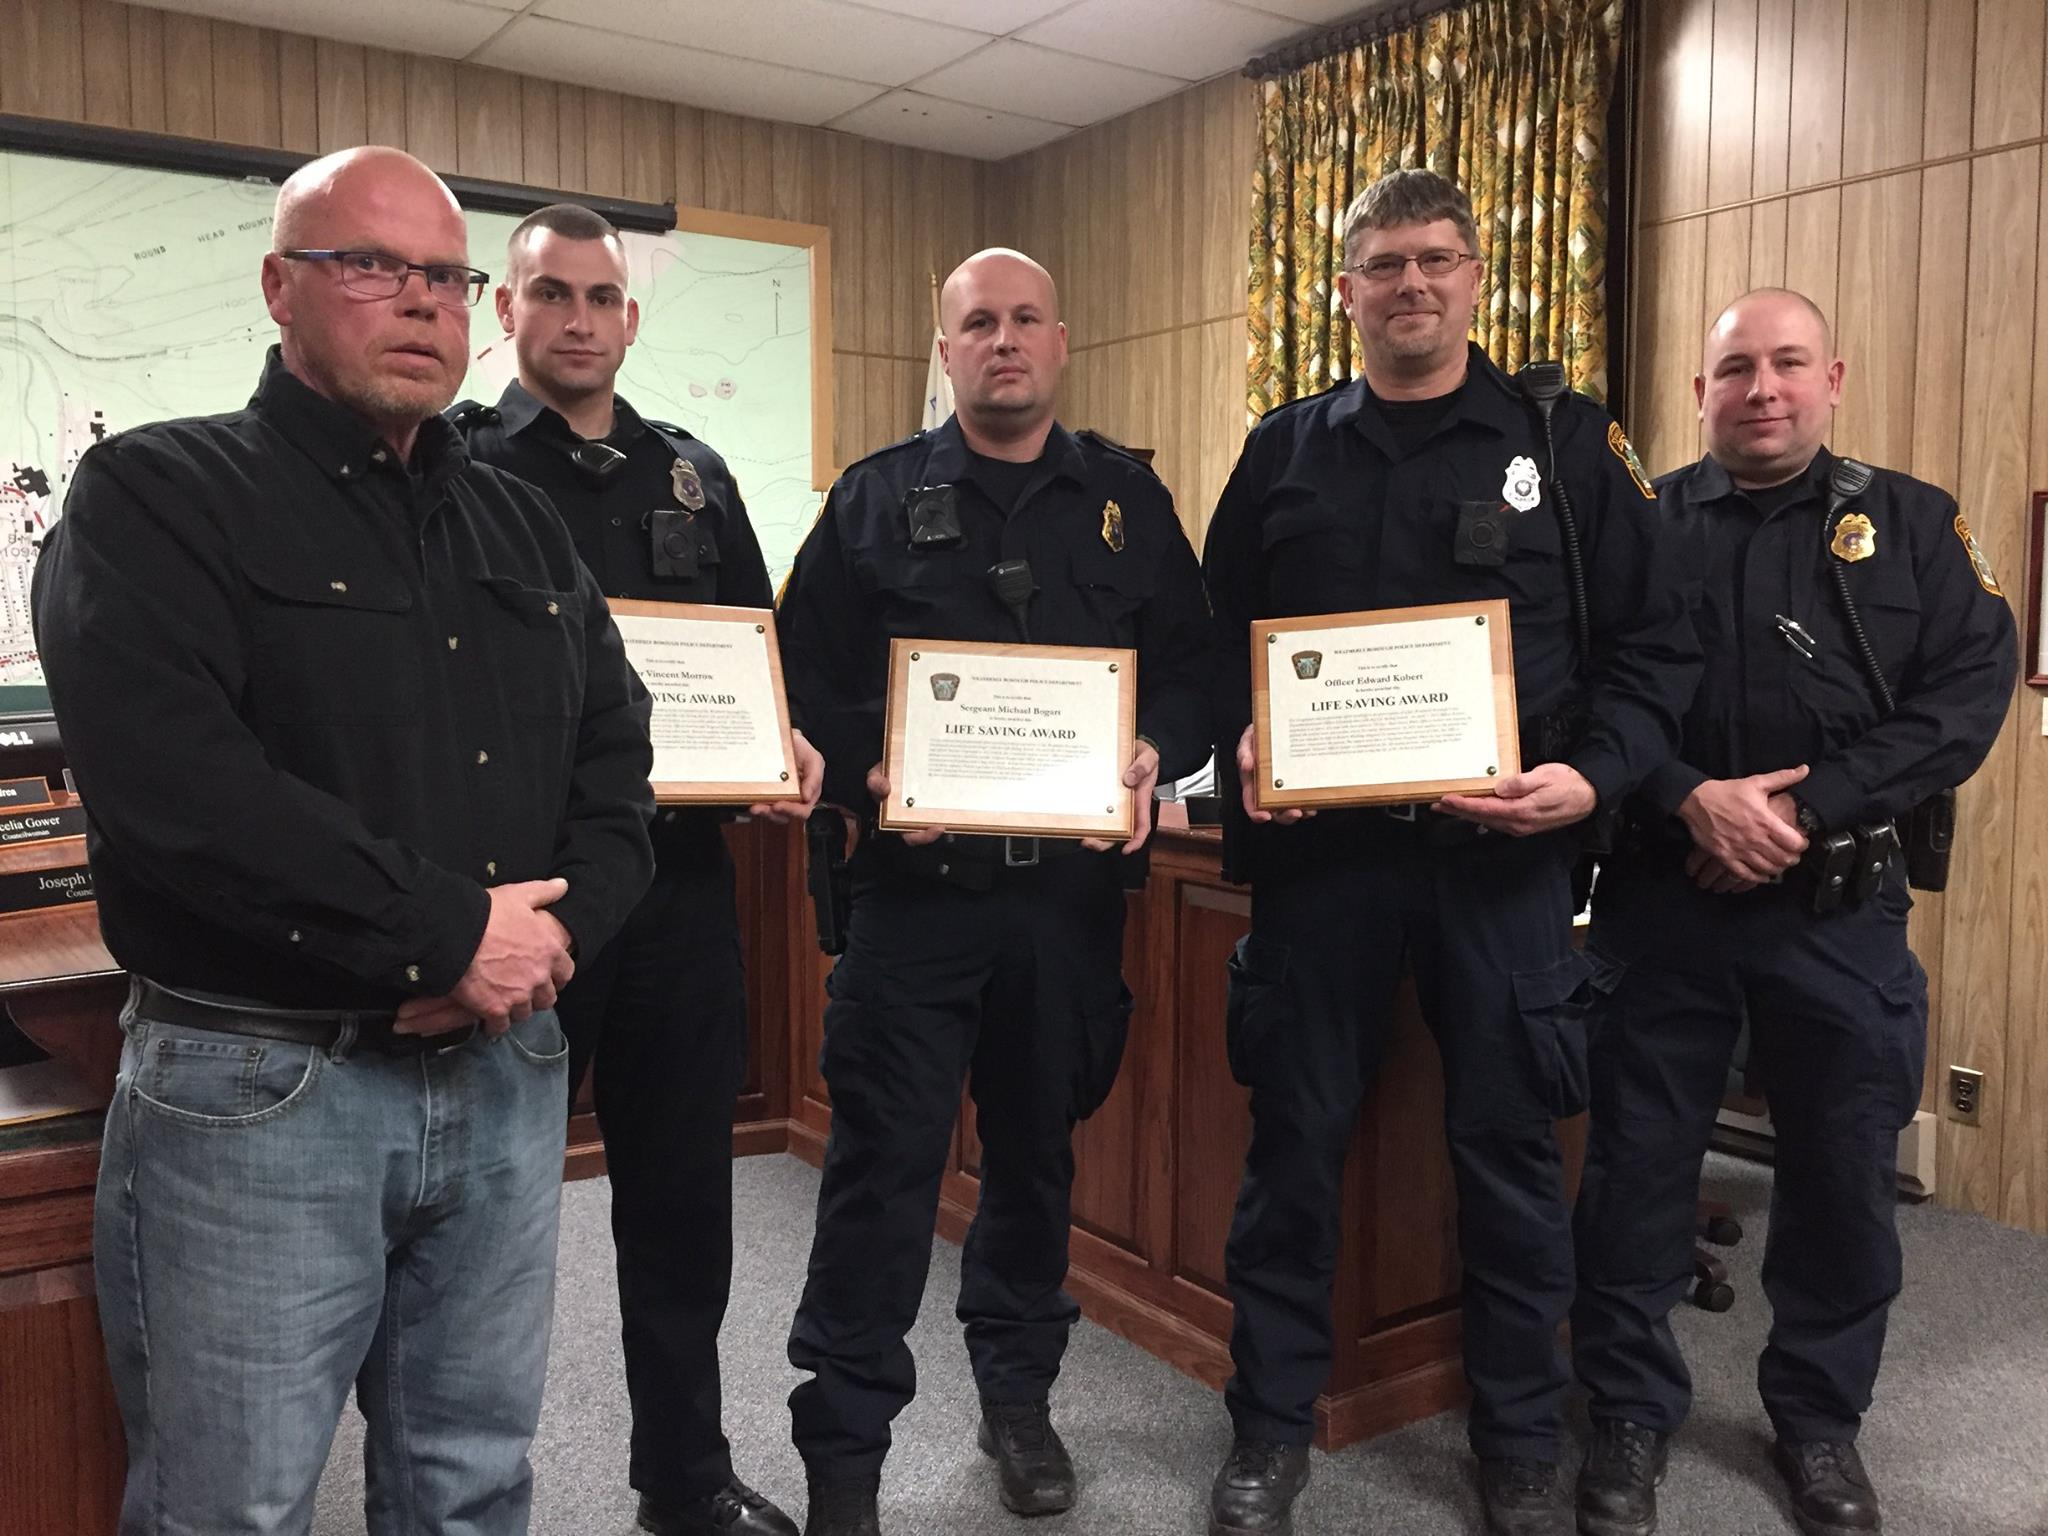 Weatherly Police Officers presented Life Saving Awards